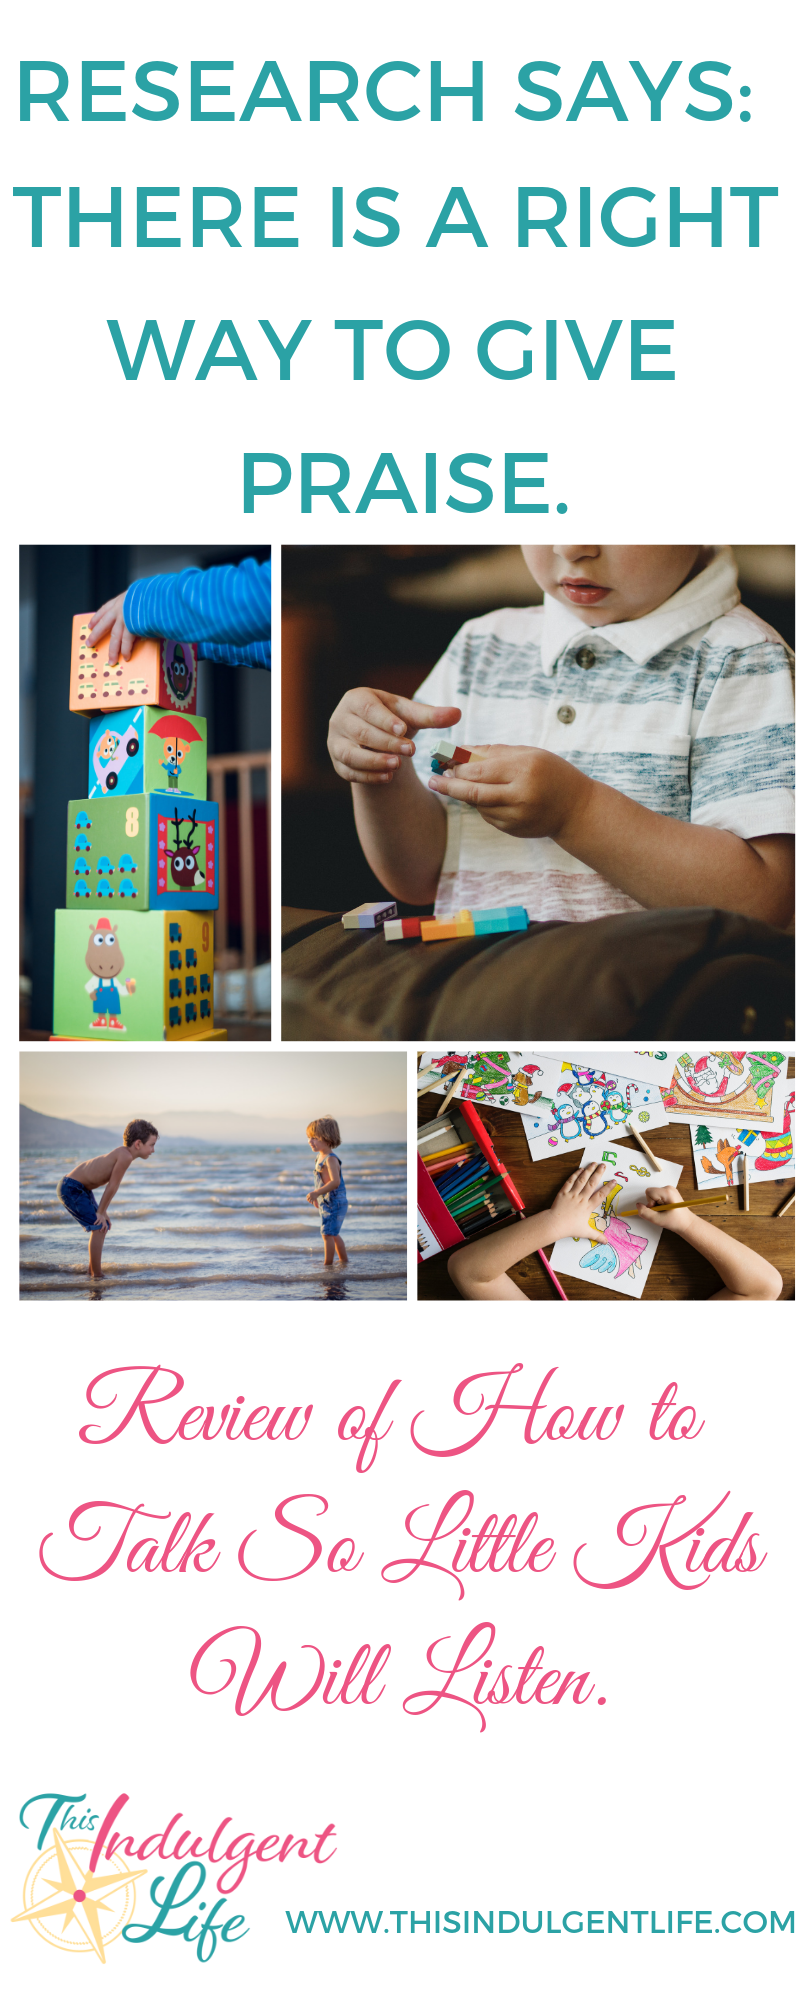 Research Says There is a Right Way to Give Praise | This Indulgent Life | Did you know that the way we traditionally give praise can cause more problems? There is a right way to give praise that will help develop a growth mindset and not a fear of failure or a sense of entitlement that traditional praise can create. | #gentleparenting #peacefulparenting #parentinghacks #growthmindset #parentingtips #effectivepraise #howtogivepraise #howtoshowappreciationtokids